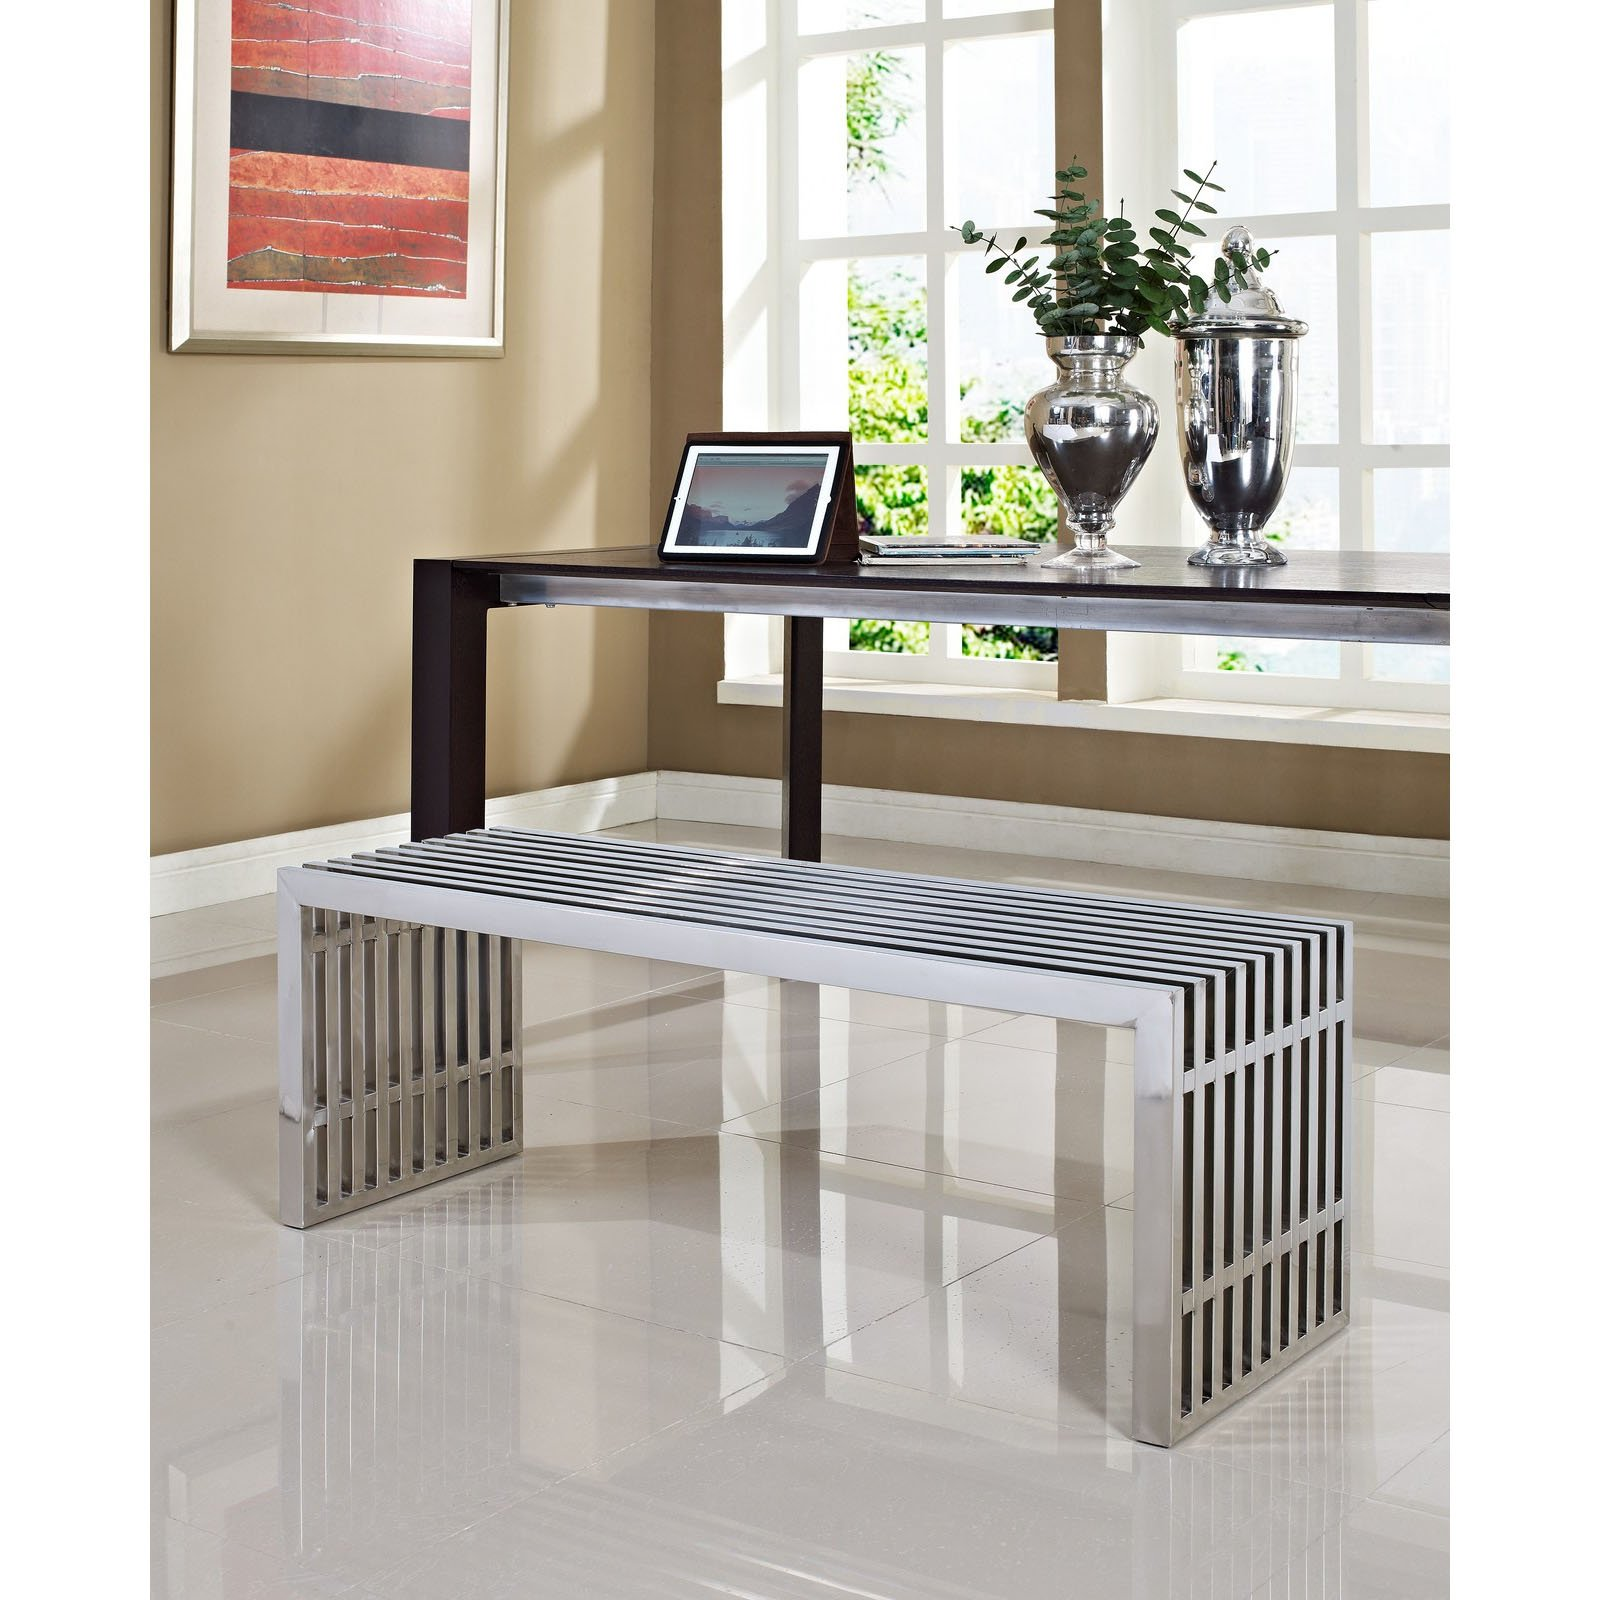 Modway Gridiron Contemporary Modern Large Stainless Steel Bench by Modway (Image #3)